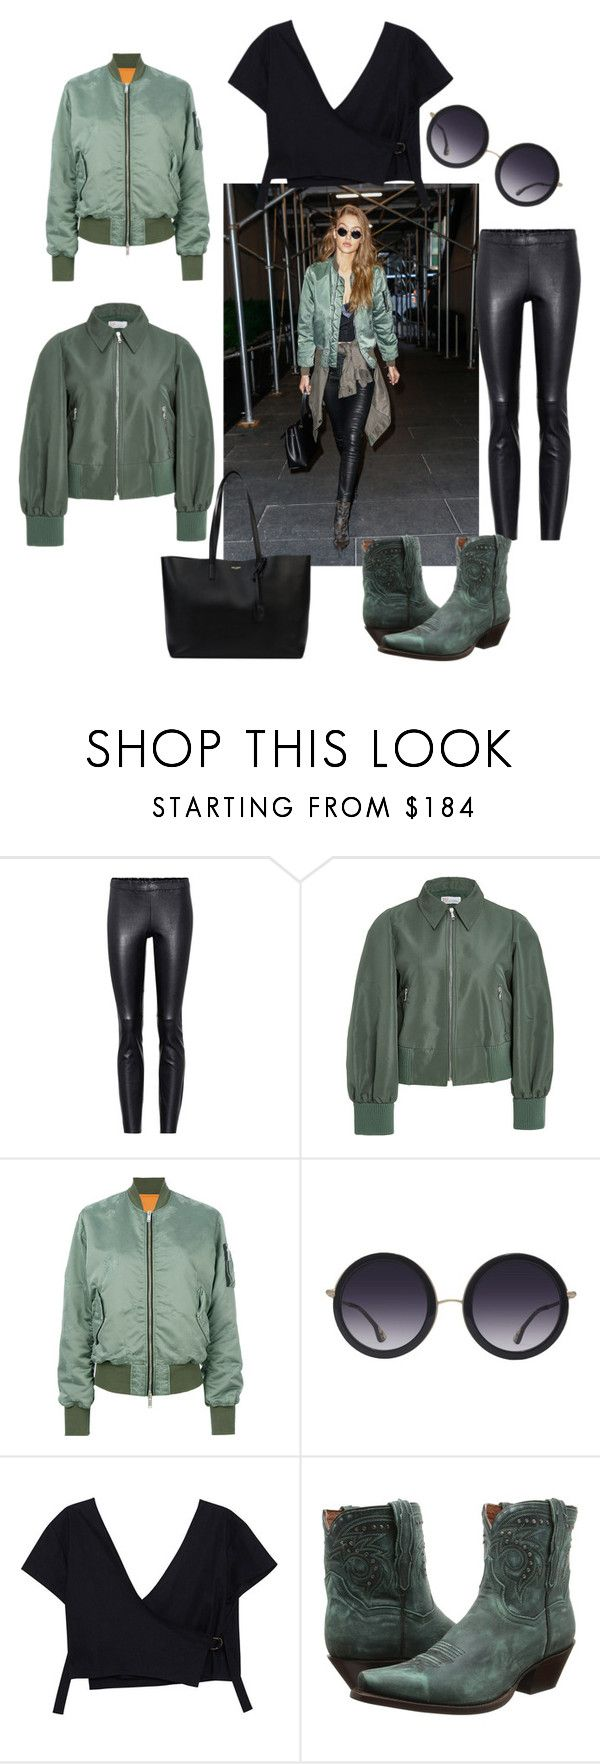 street style 1 by feliciamia on Polyvore featuring RED Valentino, Unravel, STOULS, Dan Post, Yves Saint Laurent and Alice + Olivia